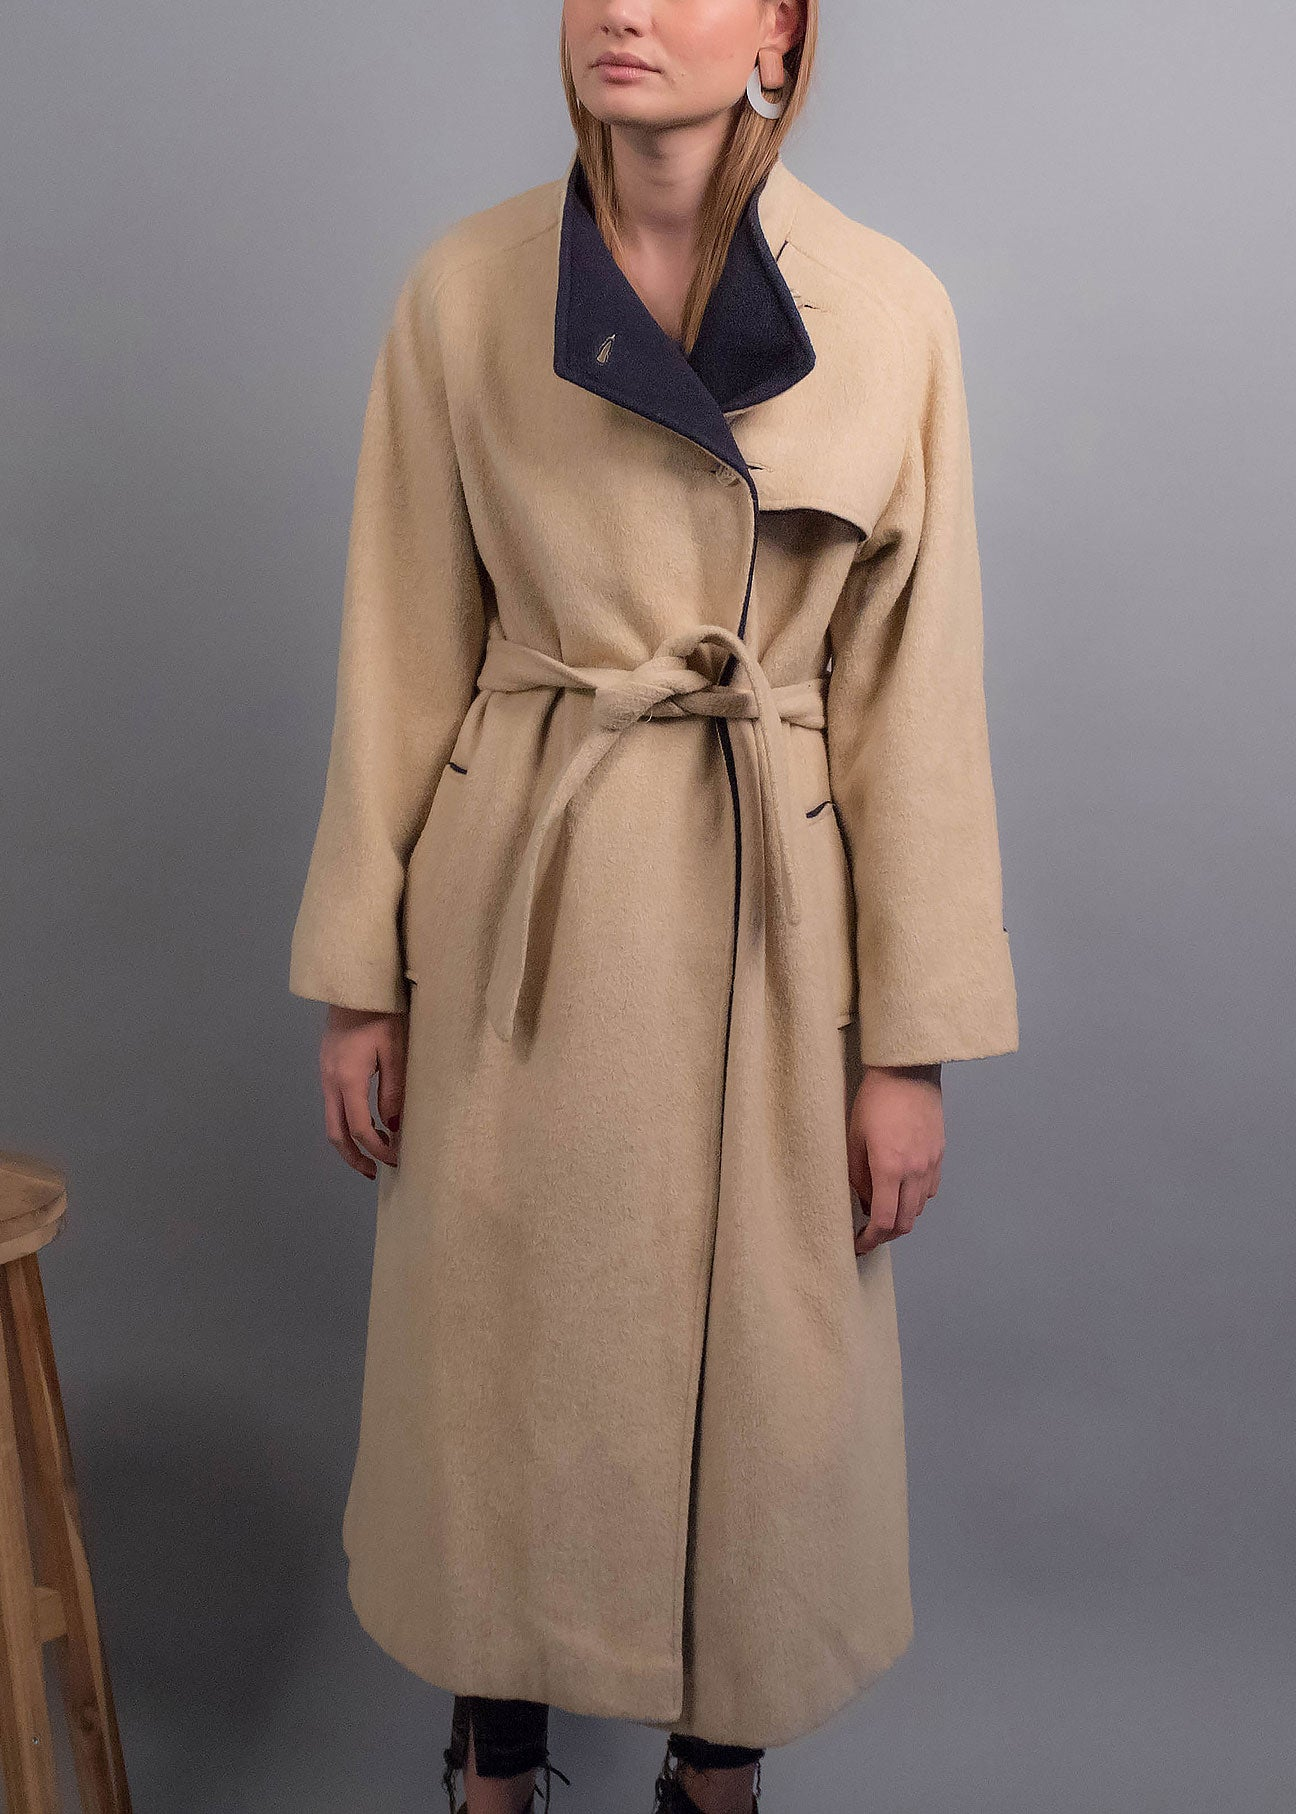 80s Asymmetrical Khaki Wool Coat